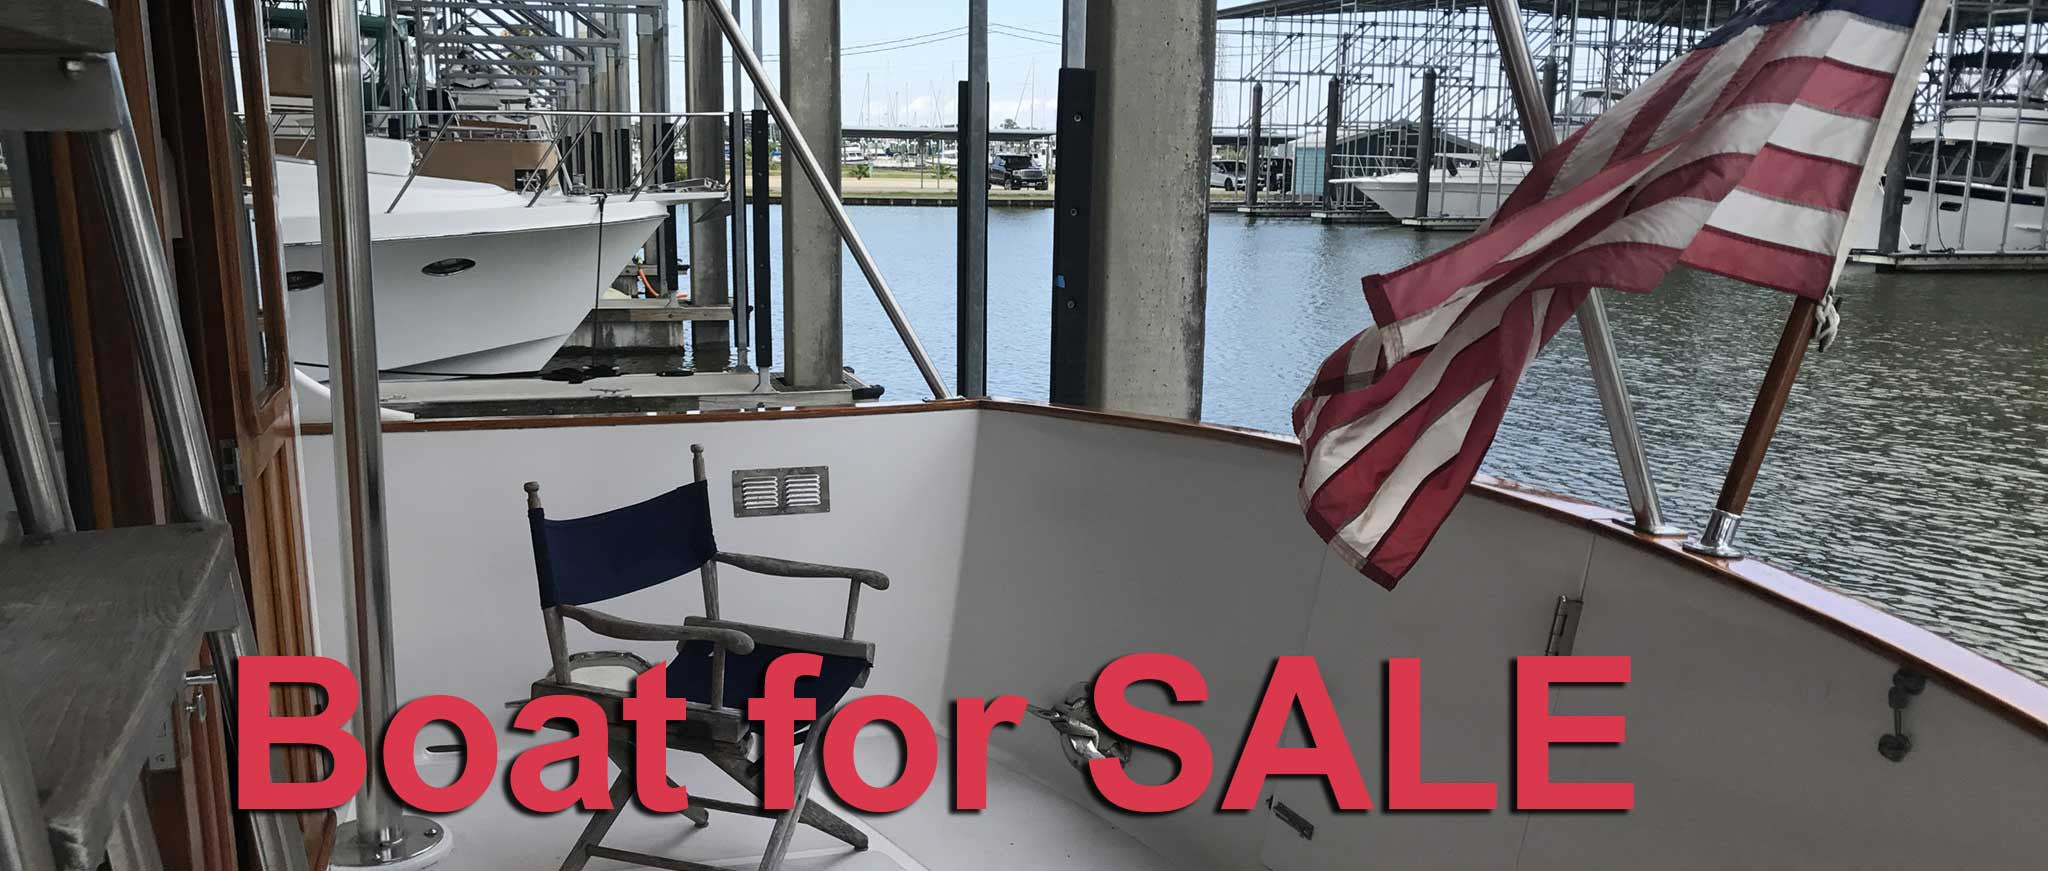 Boats for Sale in Seabrook marina Texas